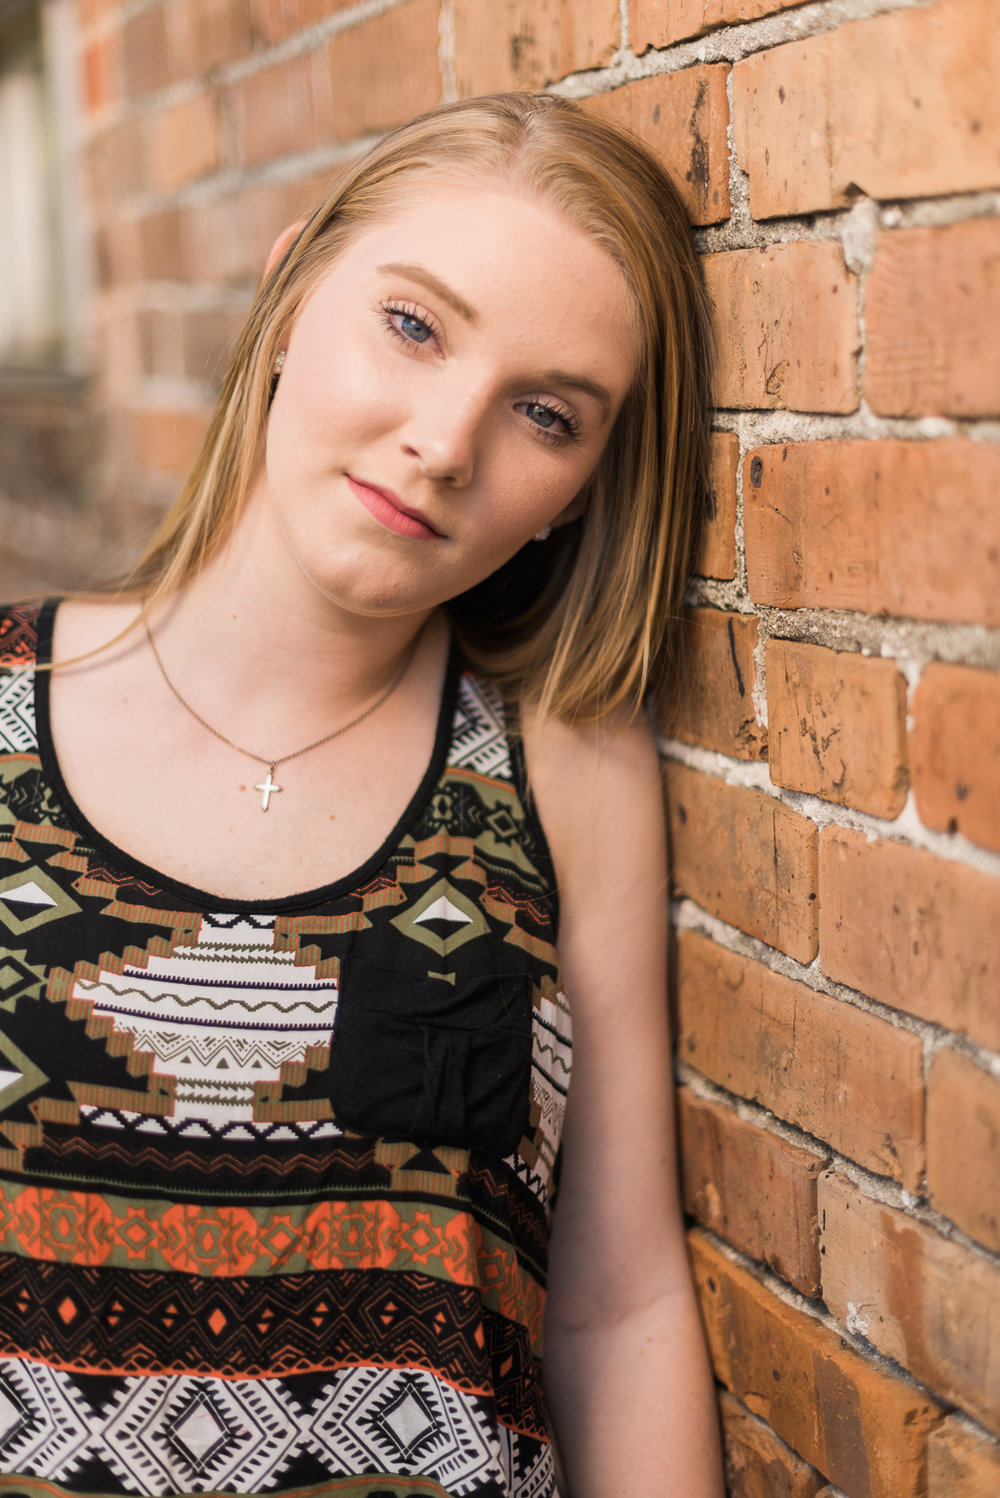 Ashlynn-Sumrall-MS-Senior-Photos-4.jpg